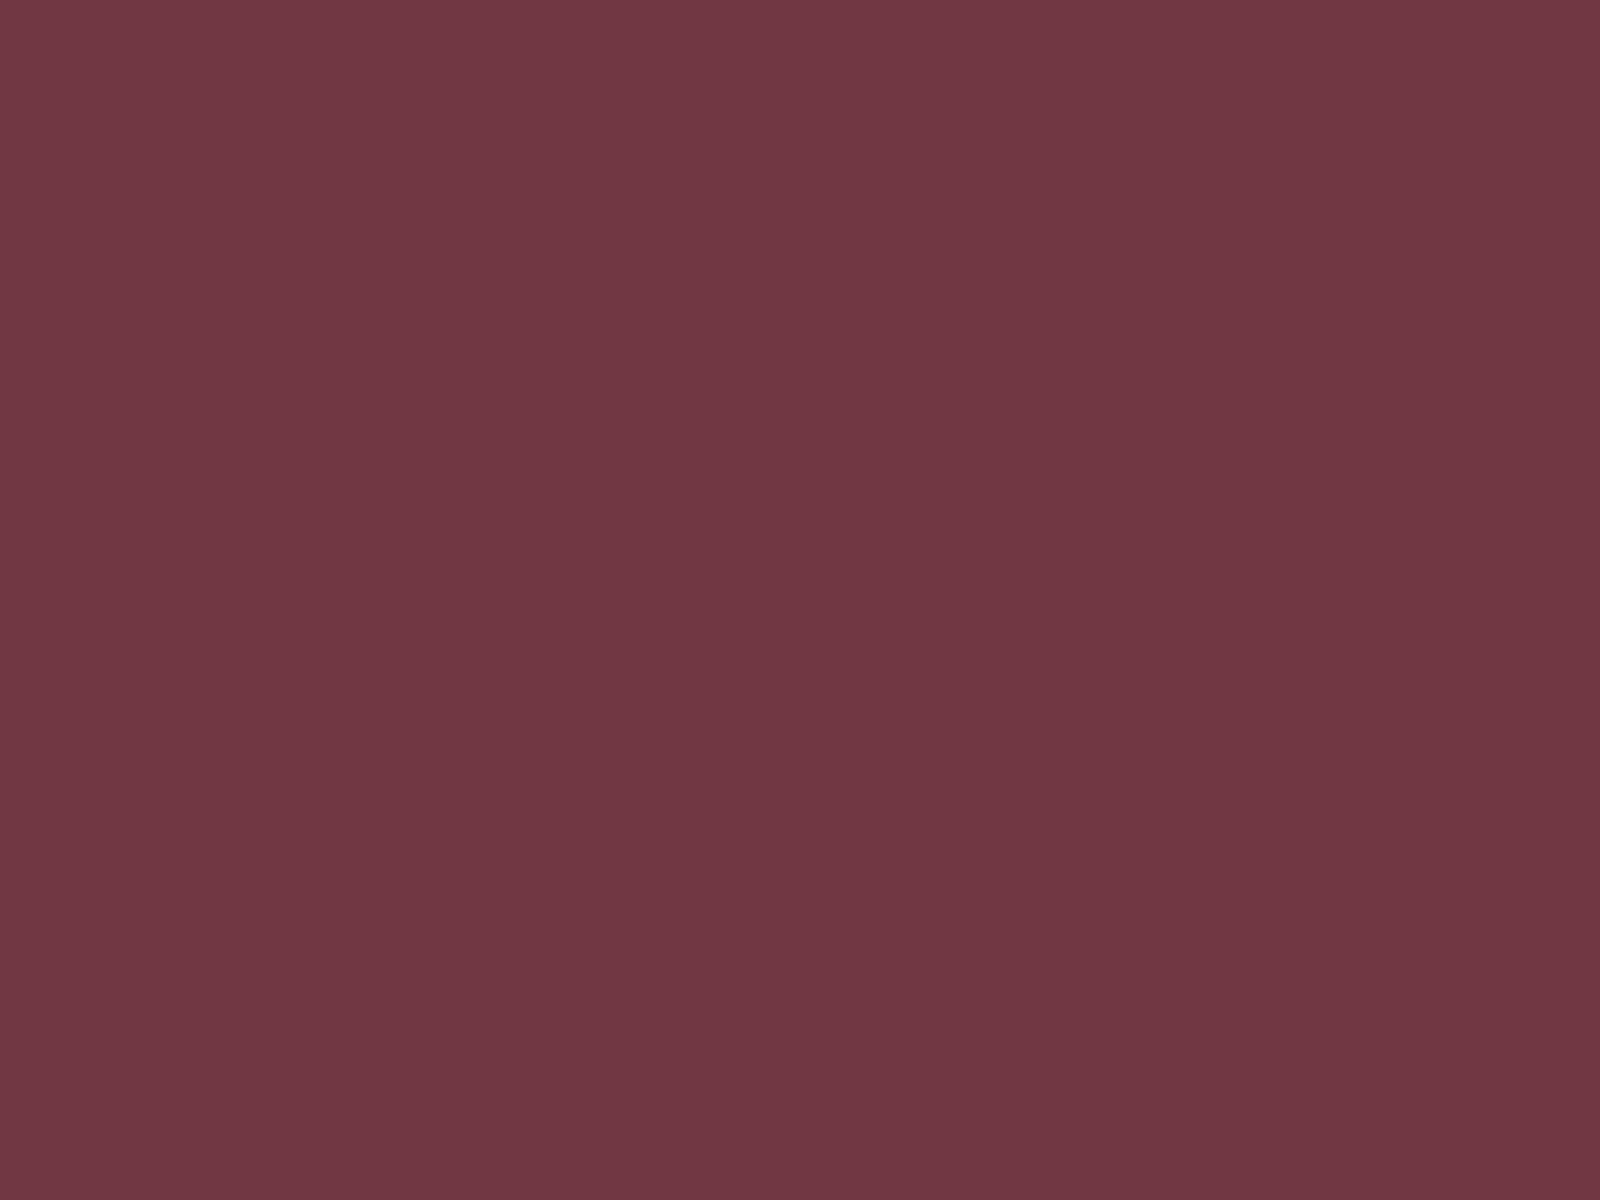 1600x1200 Catawba Solid Color Background